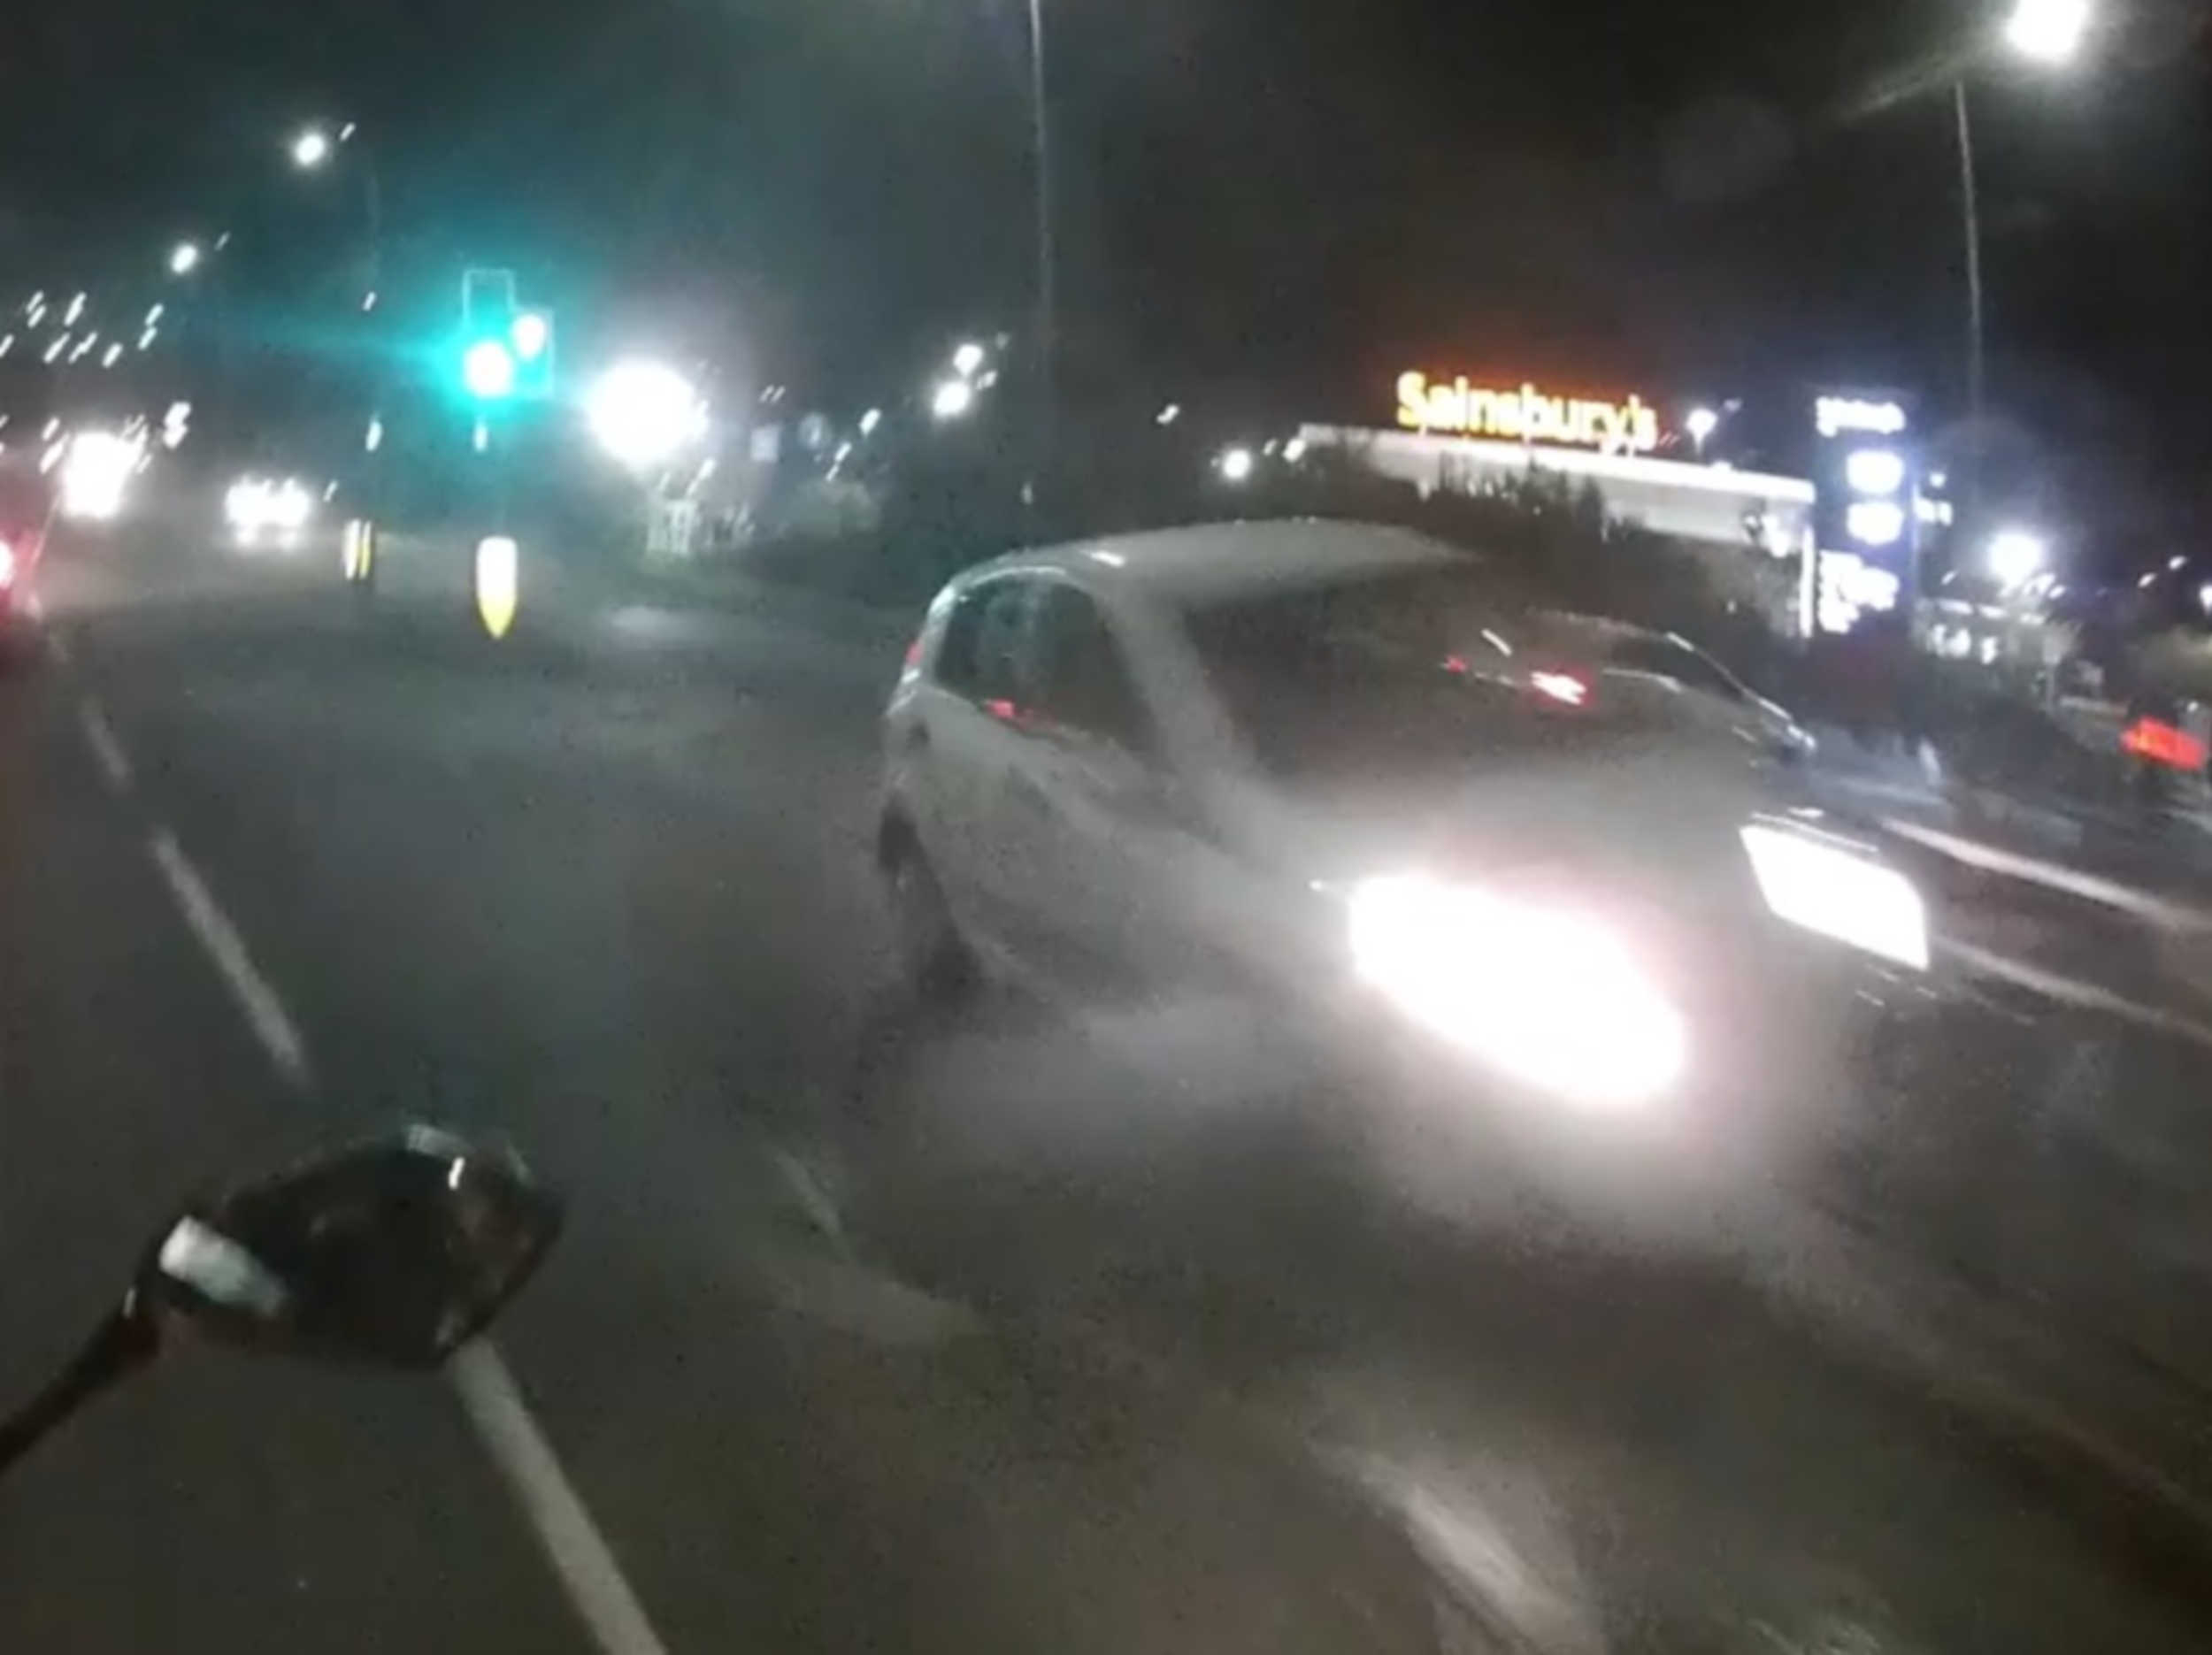 The car narrowly missing the biker- Viral Video News UK